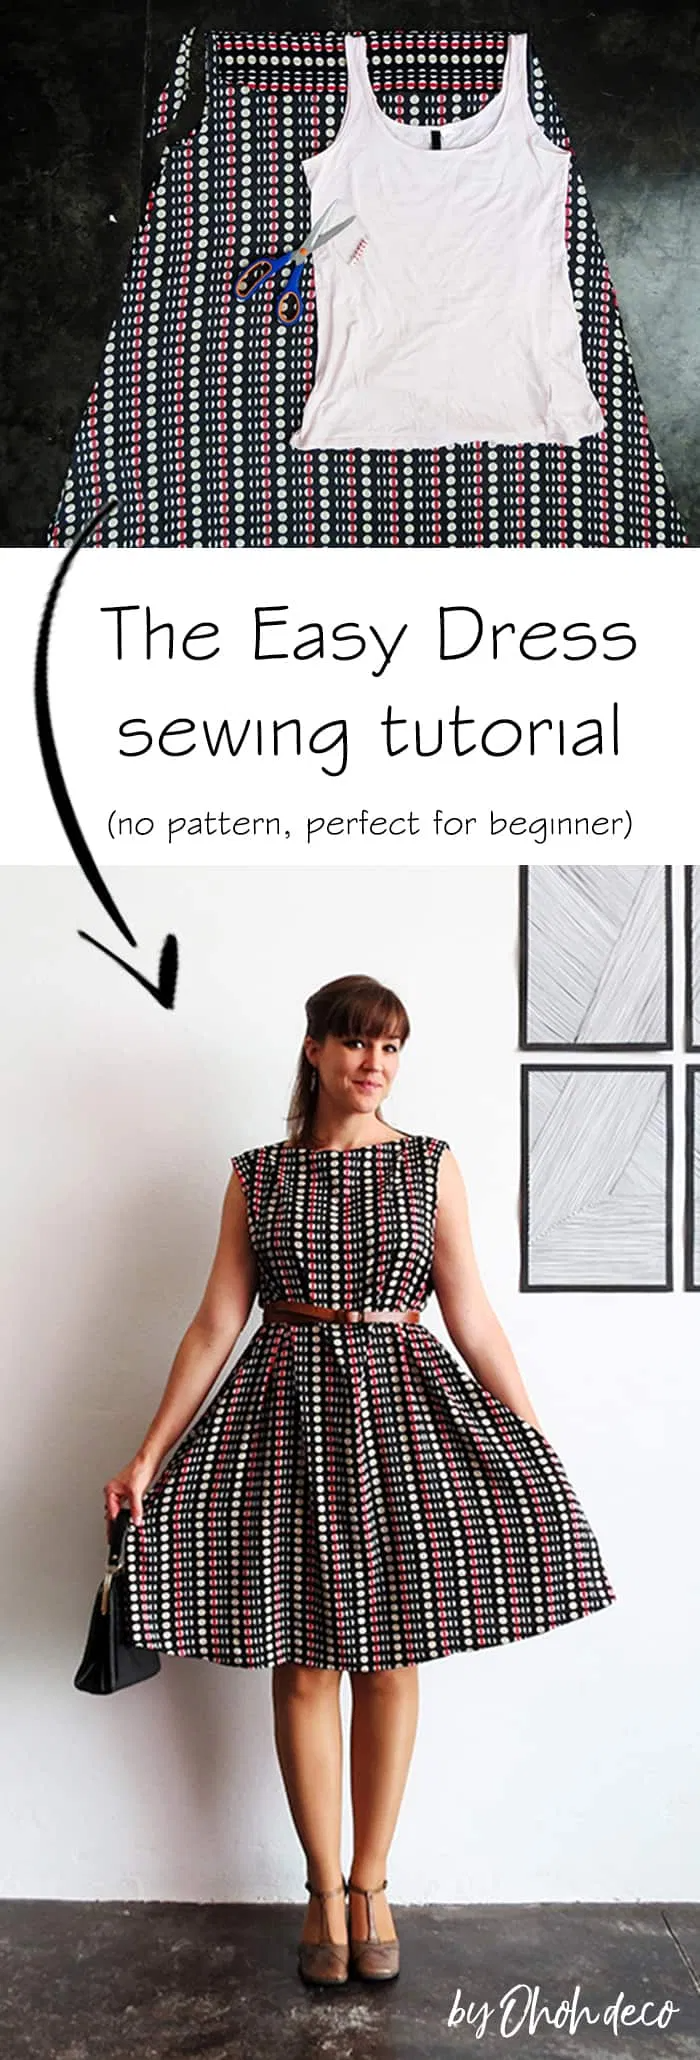 The easy dress sewing tutorial - Ohoh deco